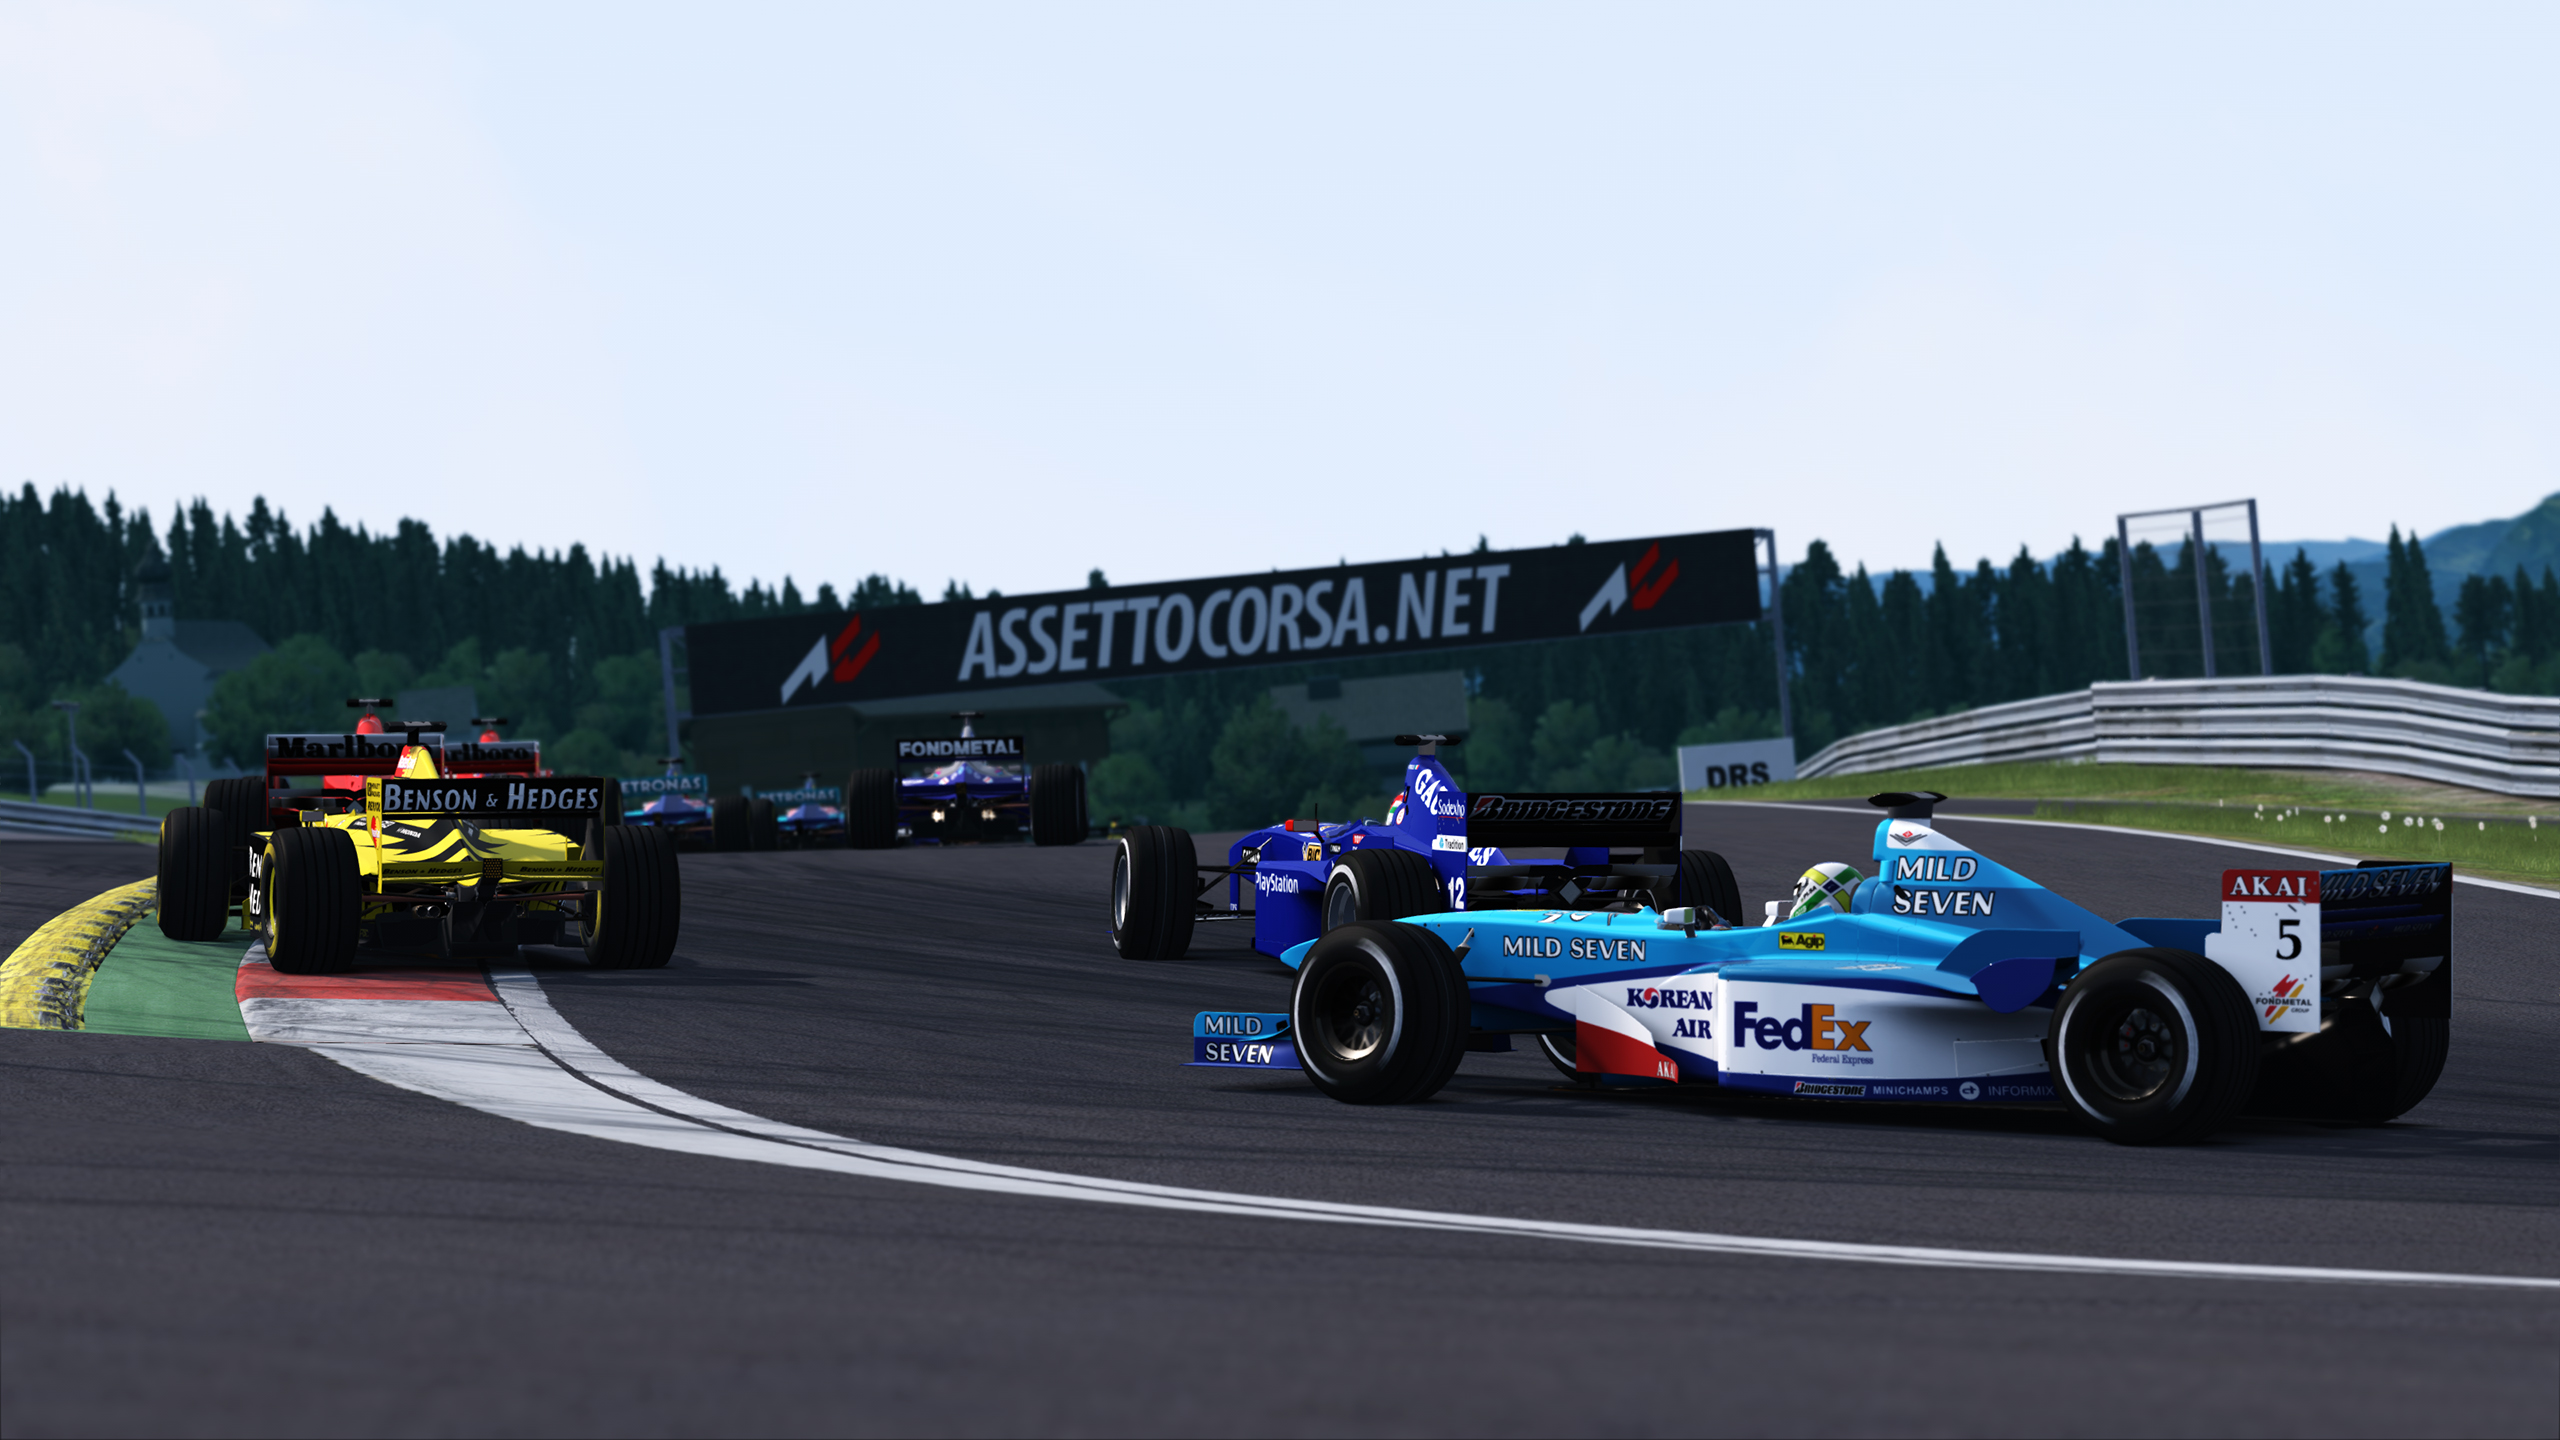 Screenshot_vsf1_mclaren-mp413_ks_red_bull_ring_28-5-117-12-52-4.jpg